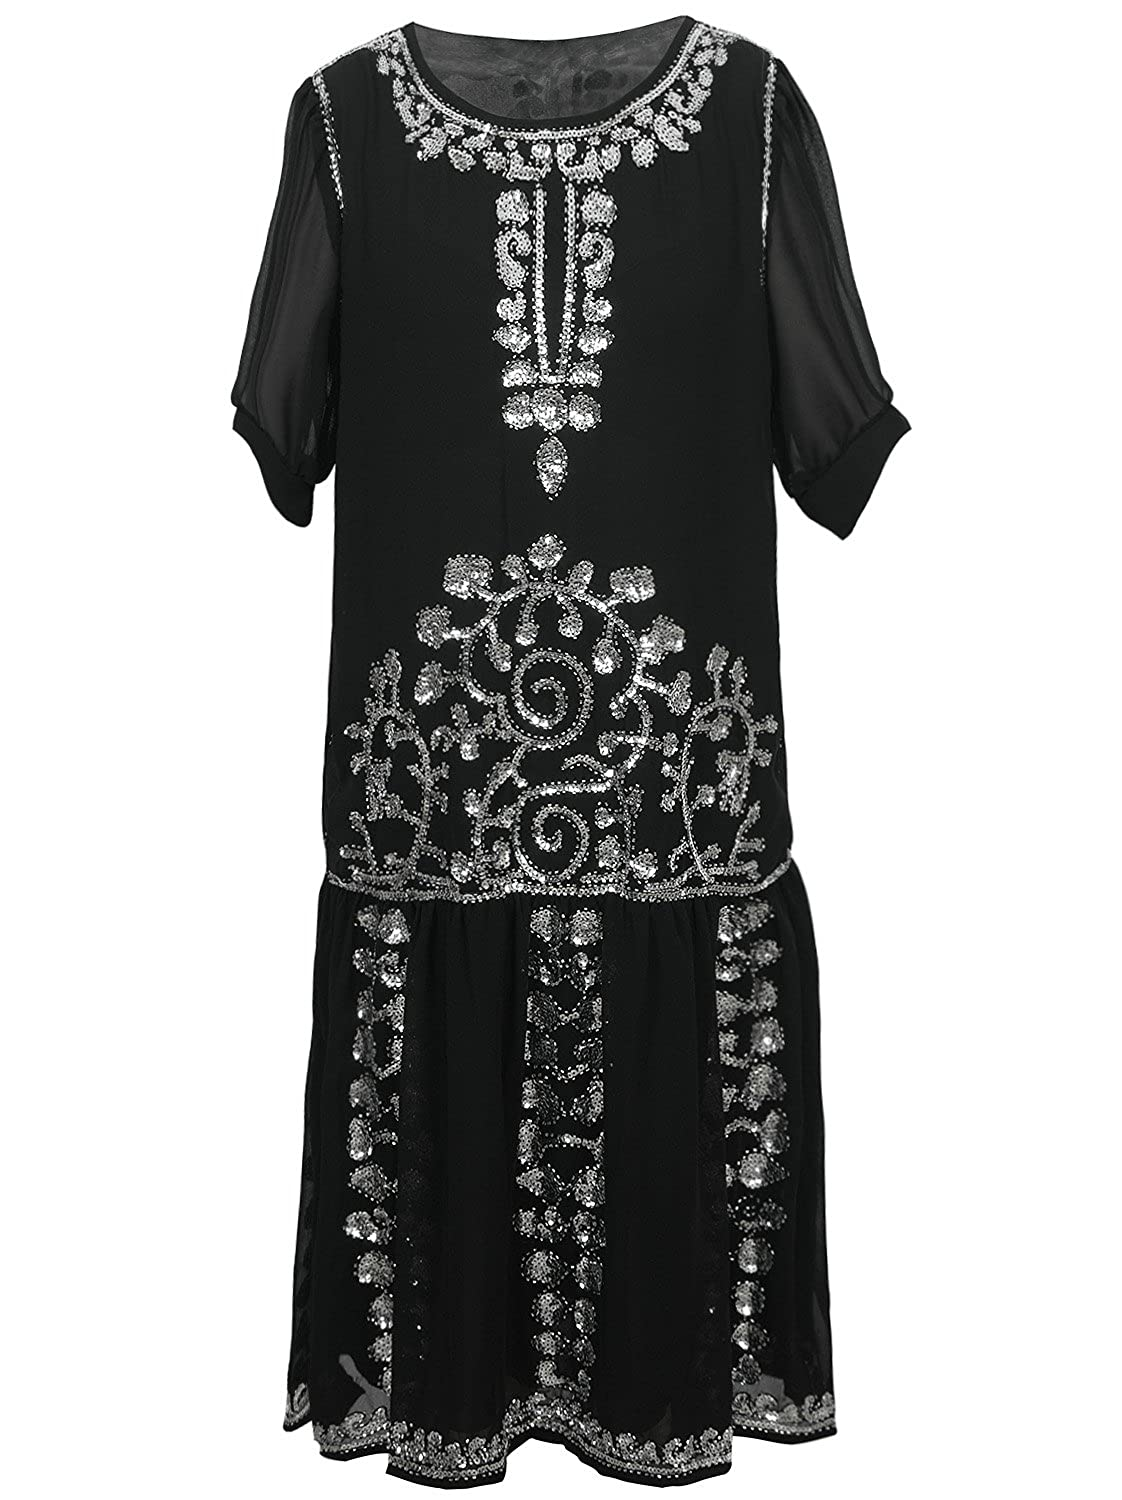 Great Gatsby Dress – Great Gatsby Dresses for Sale Vijiv Womens Black 1920s Vintage Charleston Chiffon Beaded Sequin Flapper Dress $44.99 AT vintagedancer.com